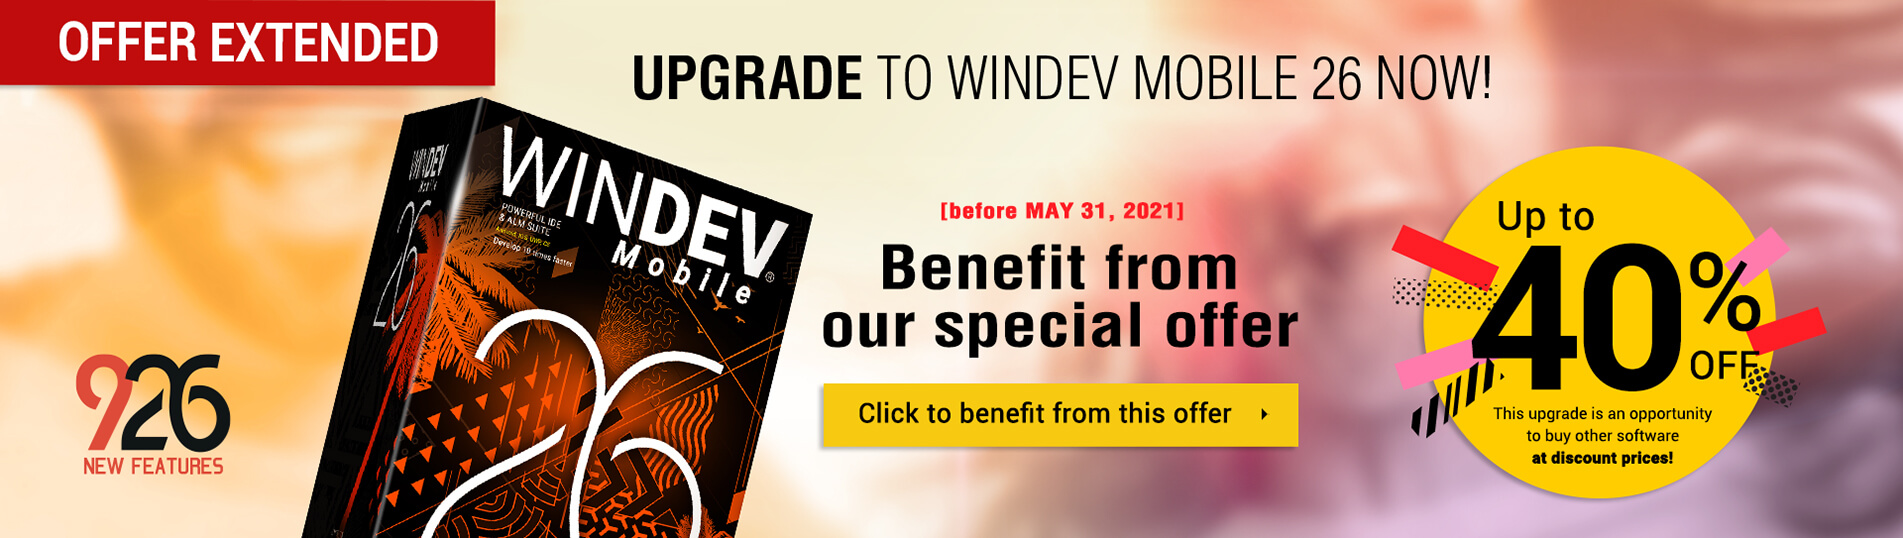 Upgrade to WINDEV Mobile 26 now!